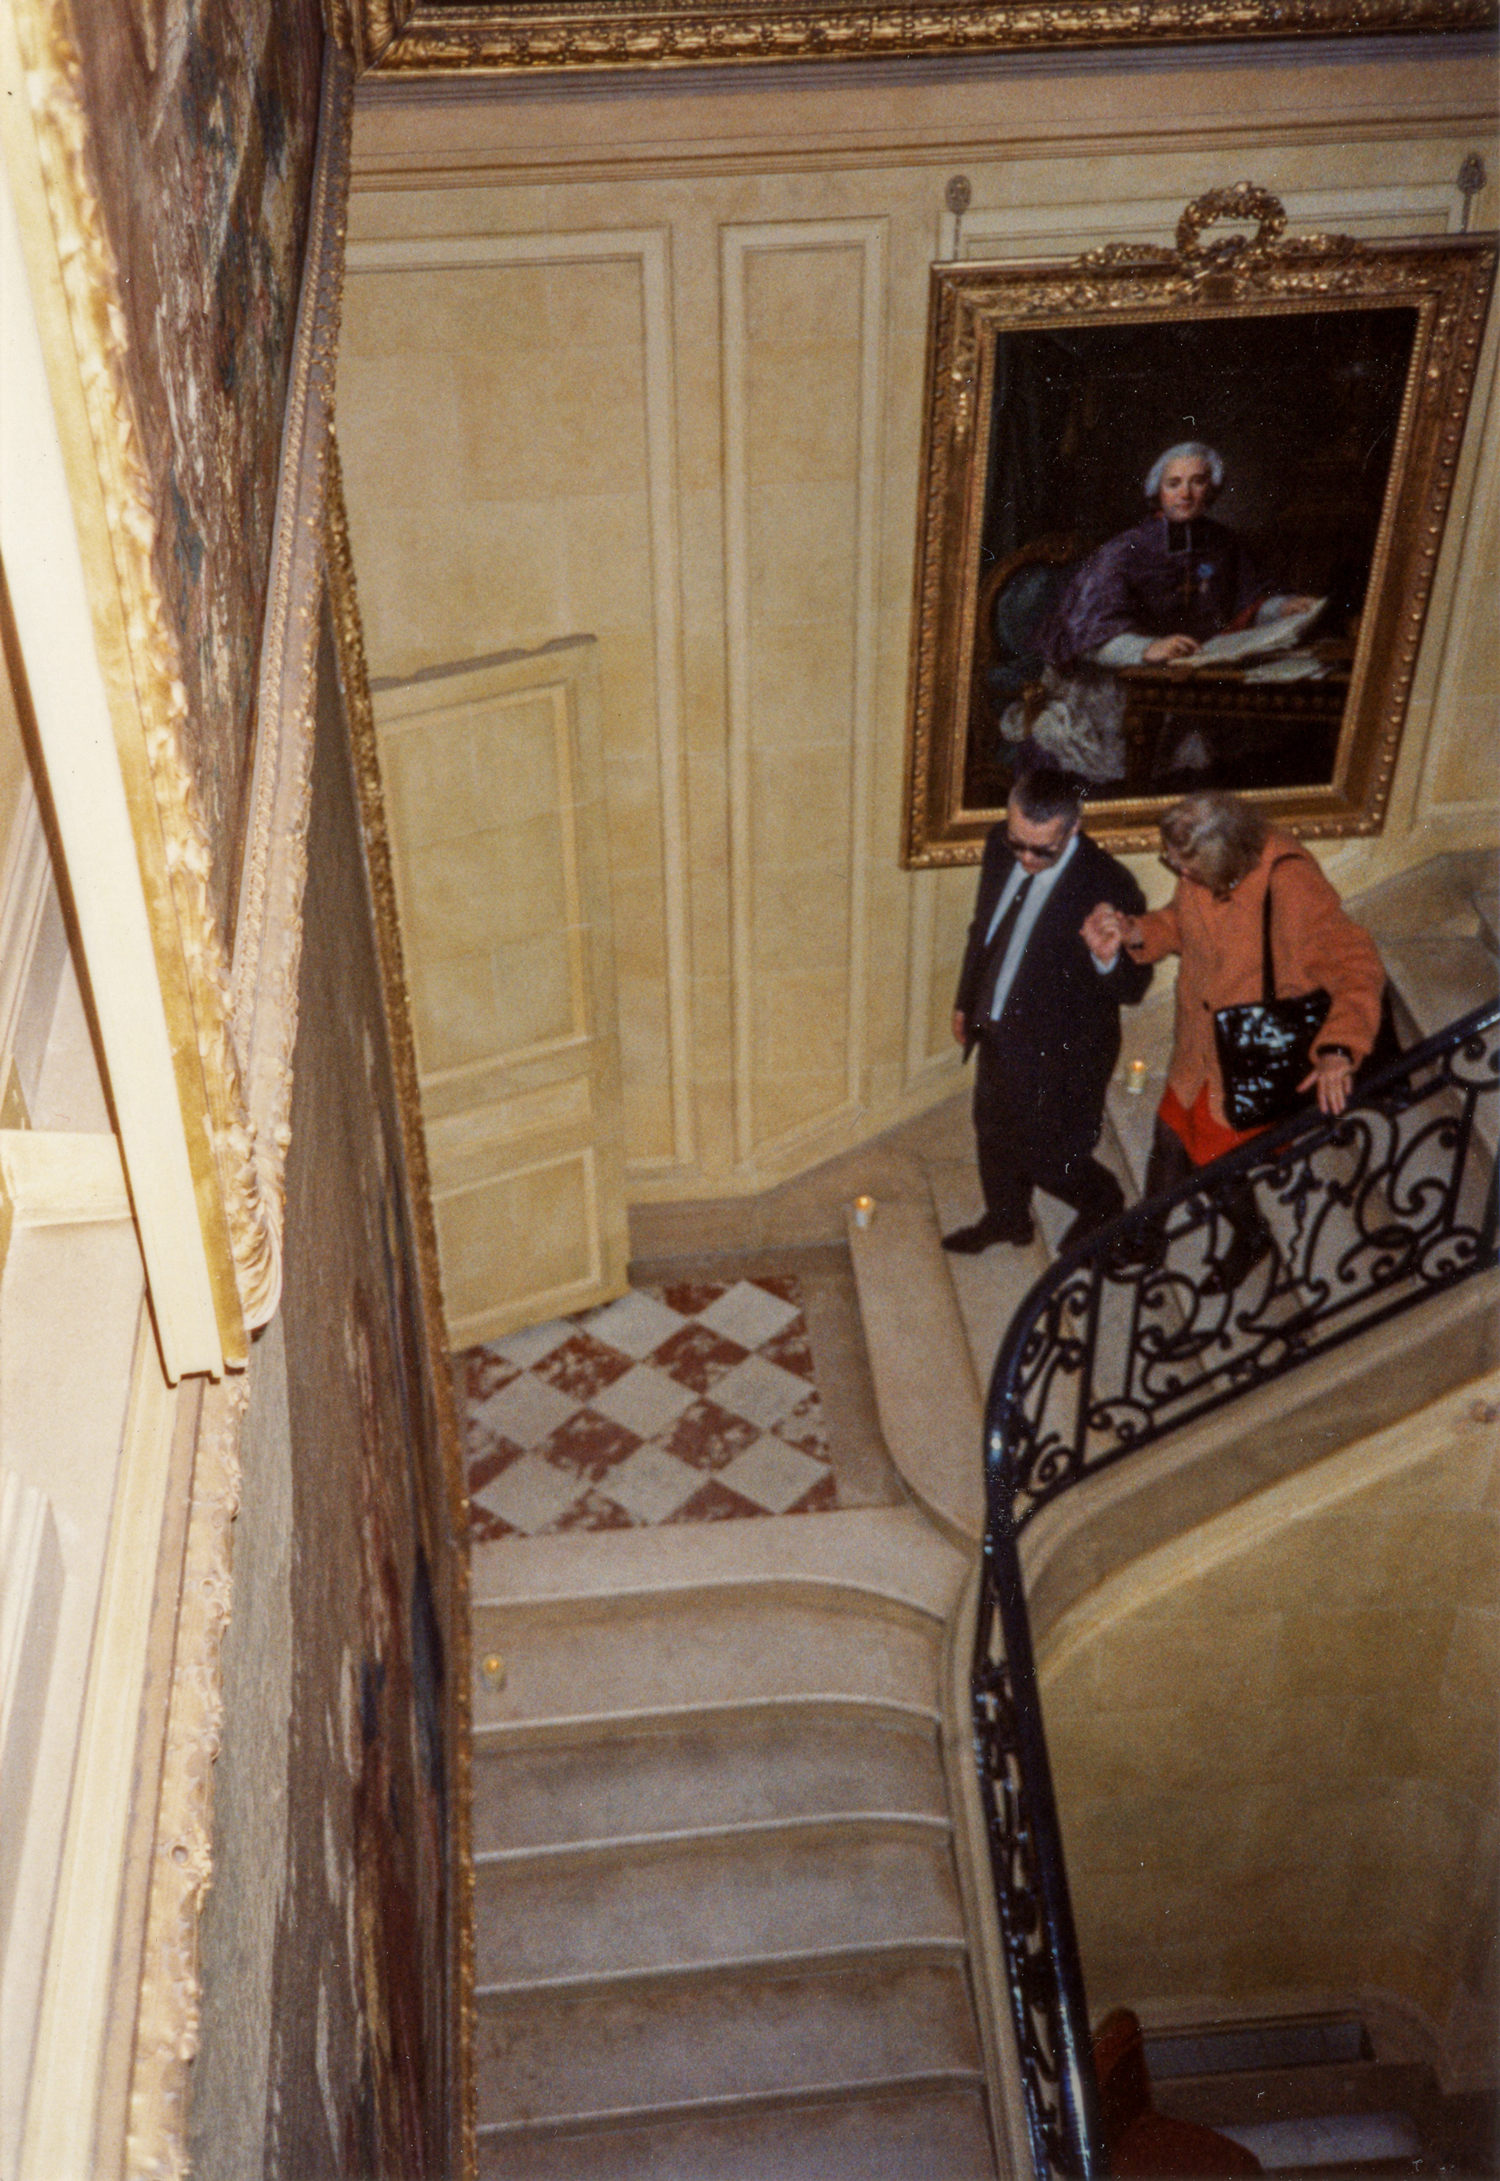 (Karl helping Carrie Donovan down the stairs of his home in Paris.)